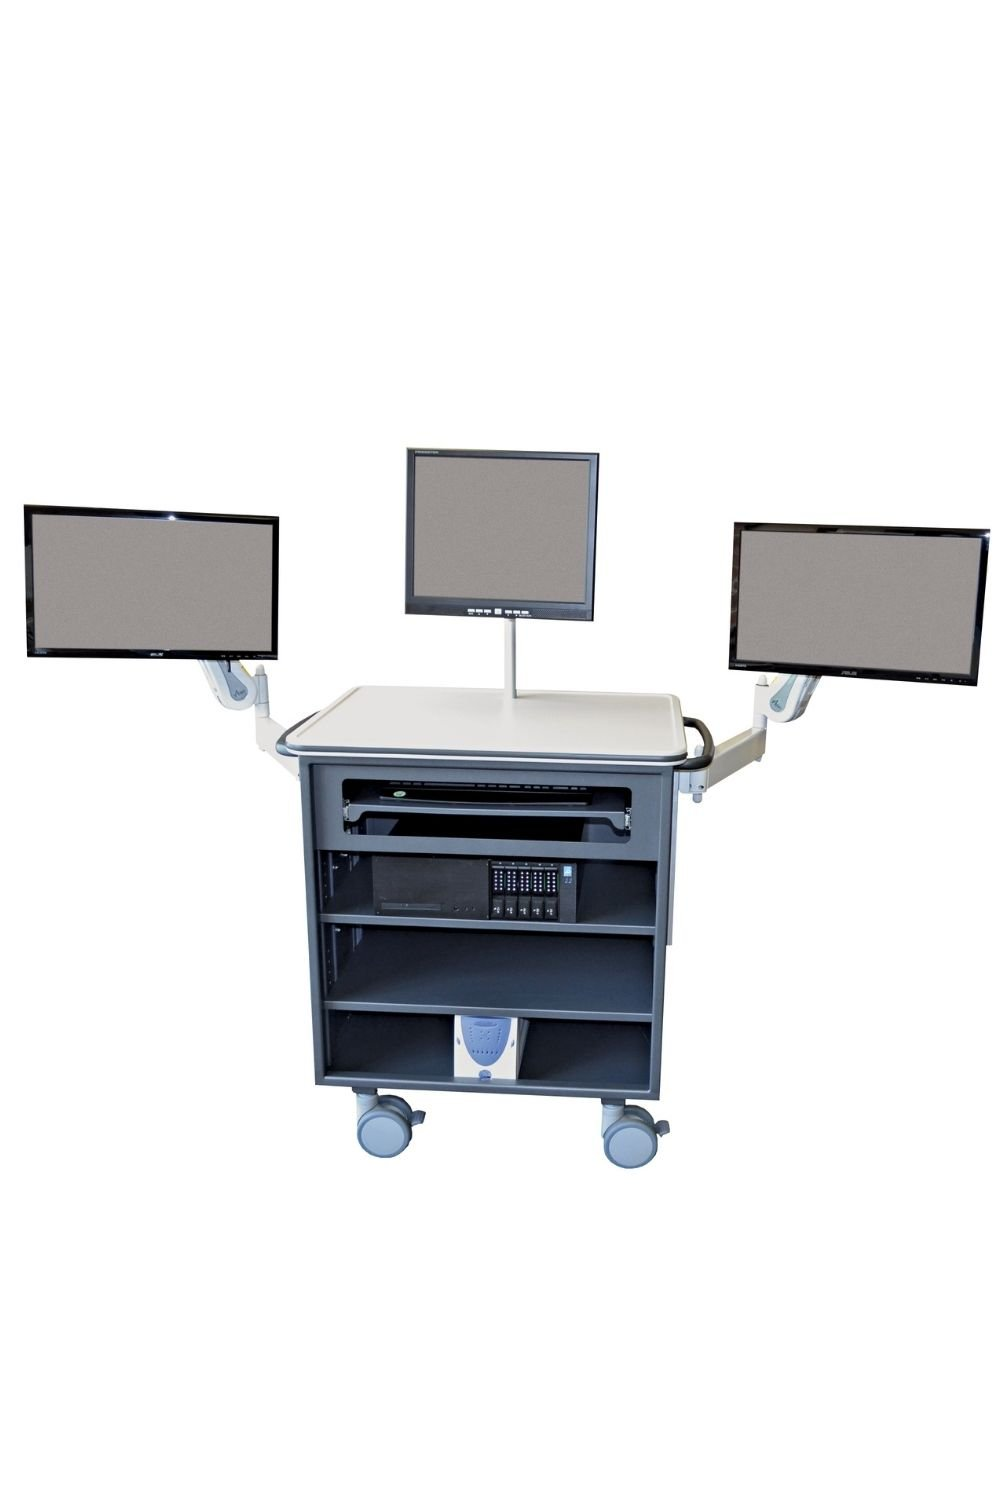 Open case cart with multiple monitors